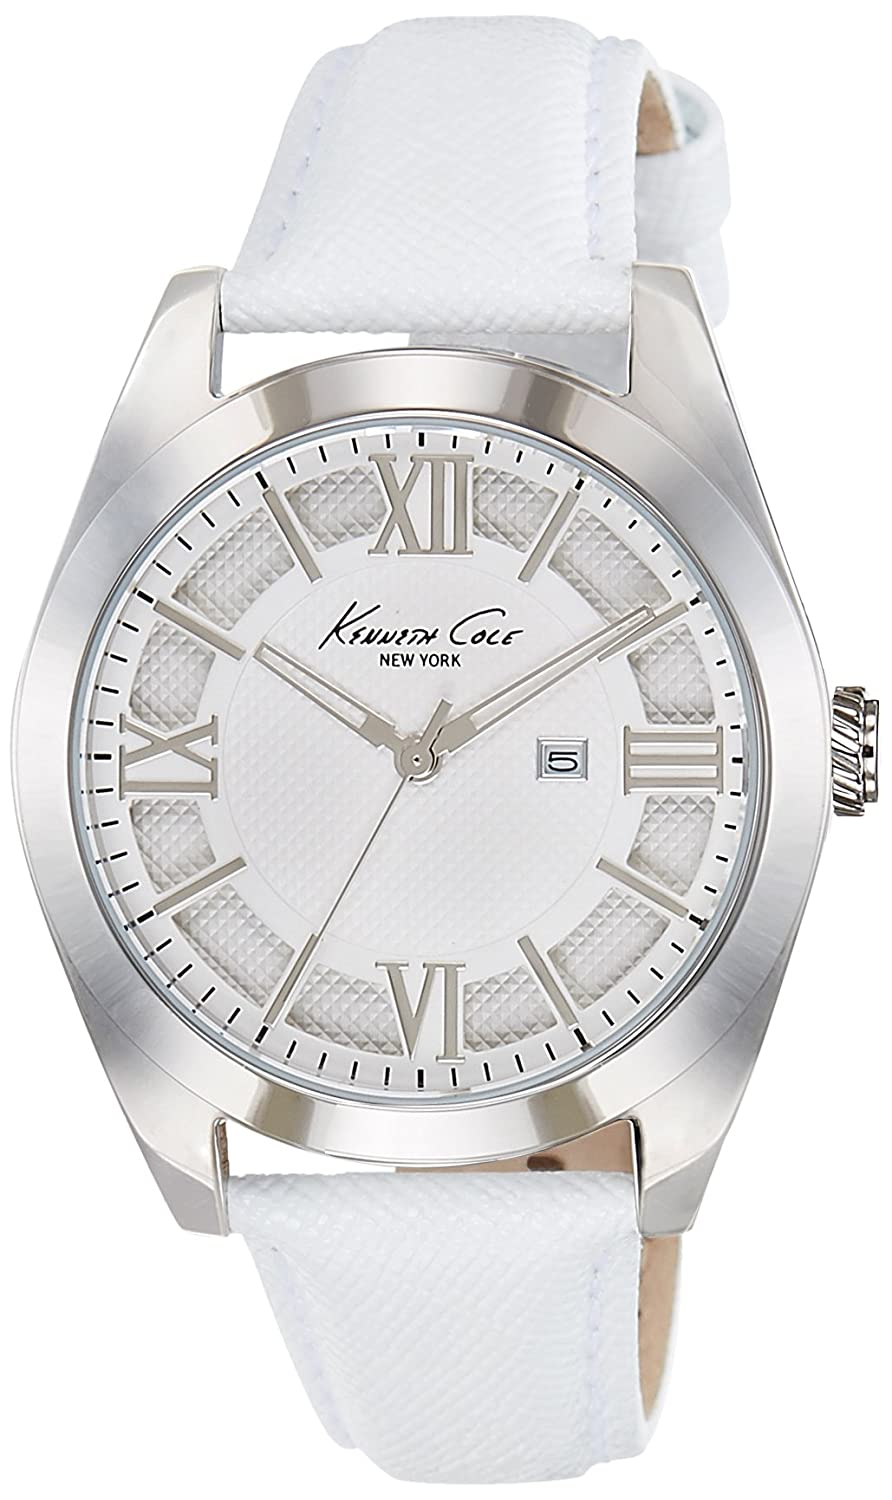 Kenneth Cole reloj mujer Dress Sport 10021282